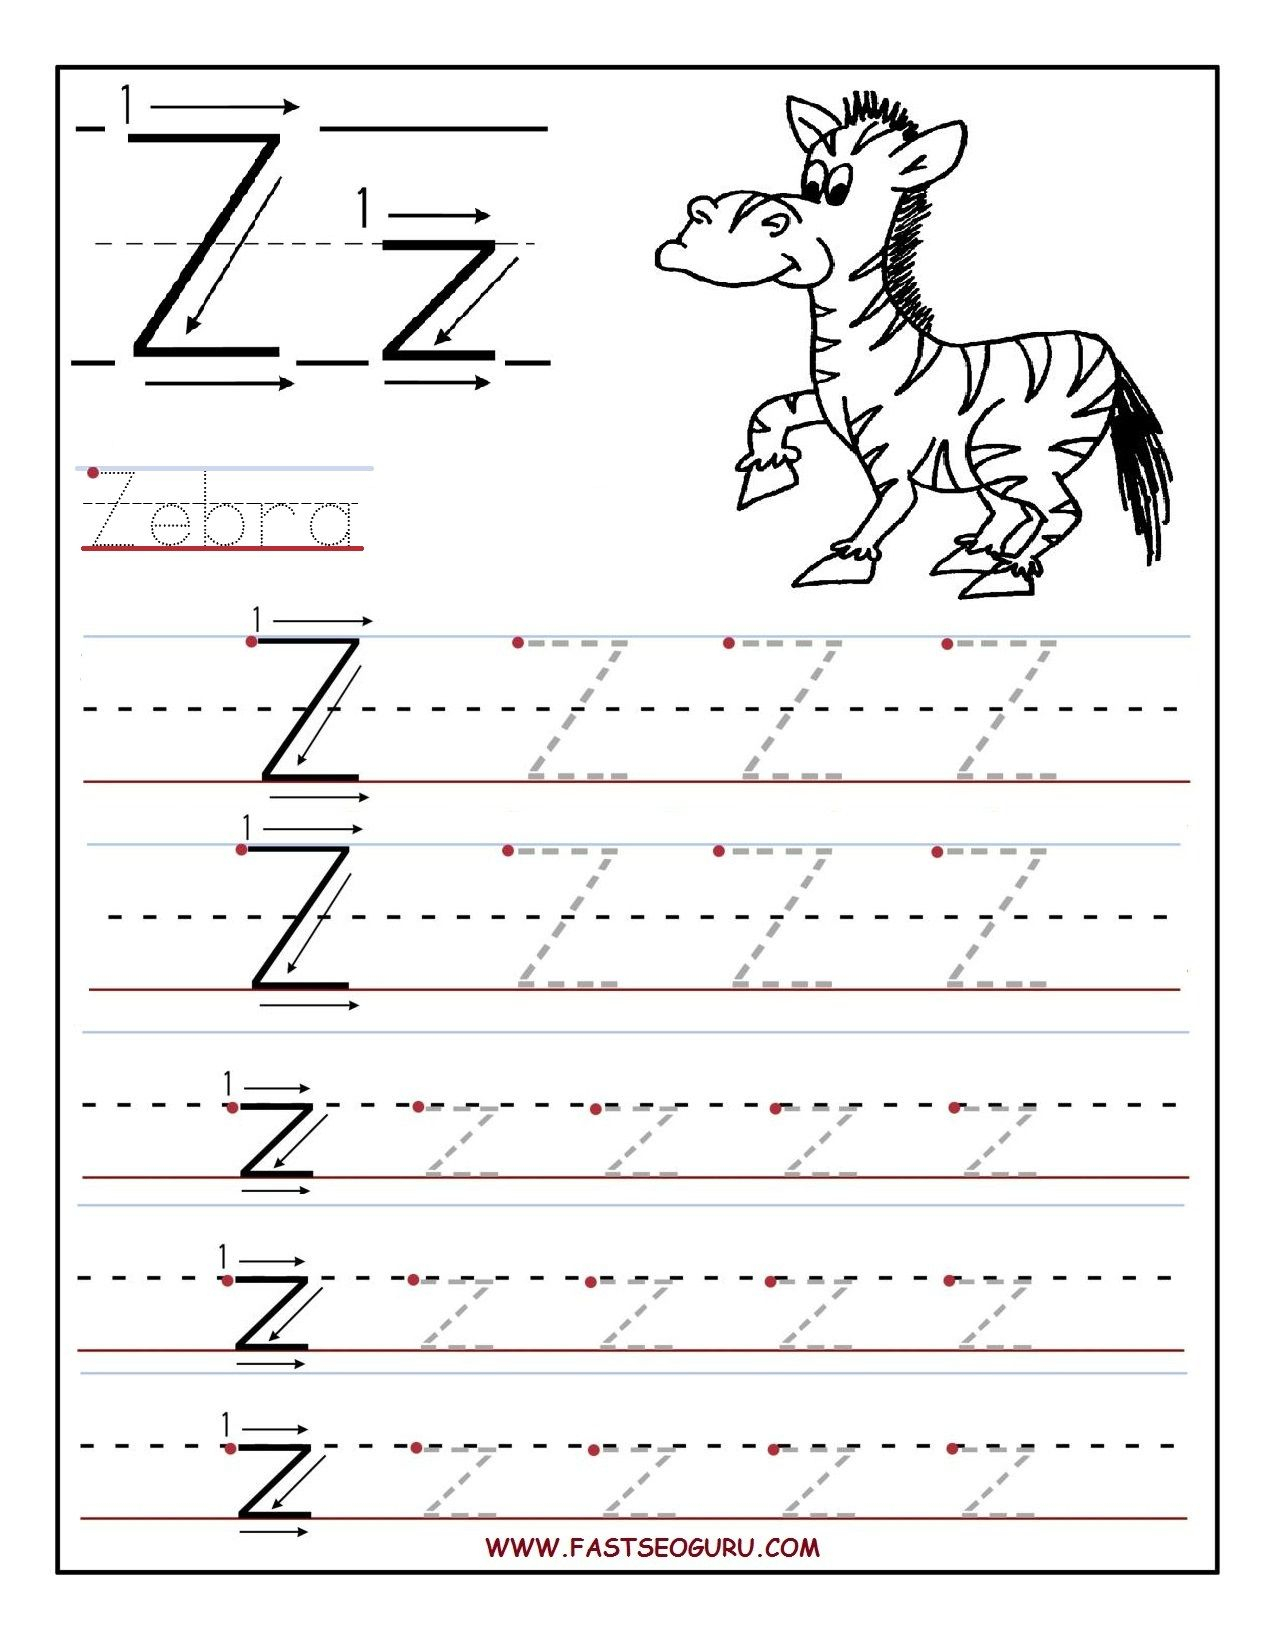 10 Enjoyable Letter Z Worksheets | Kittybabylove regarding Letter Z Worksheets Free